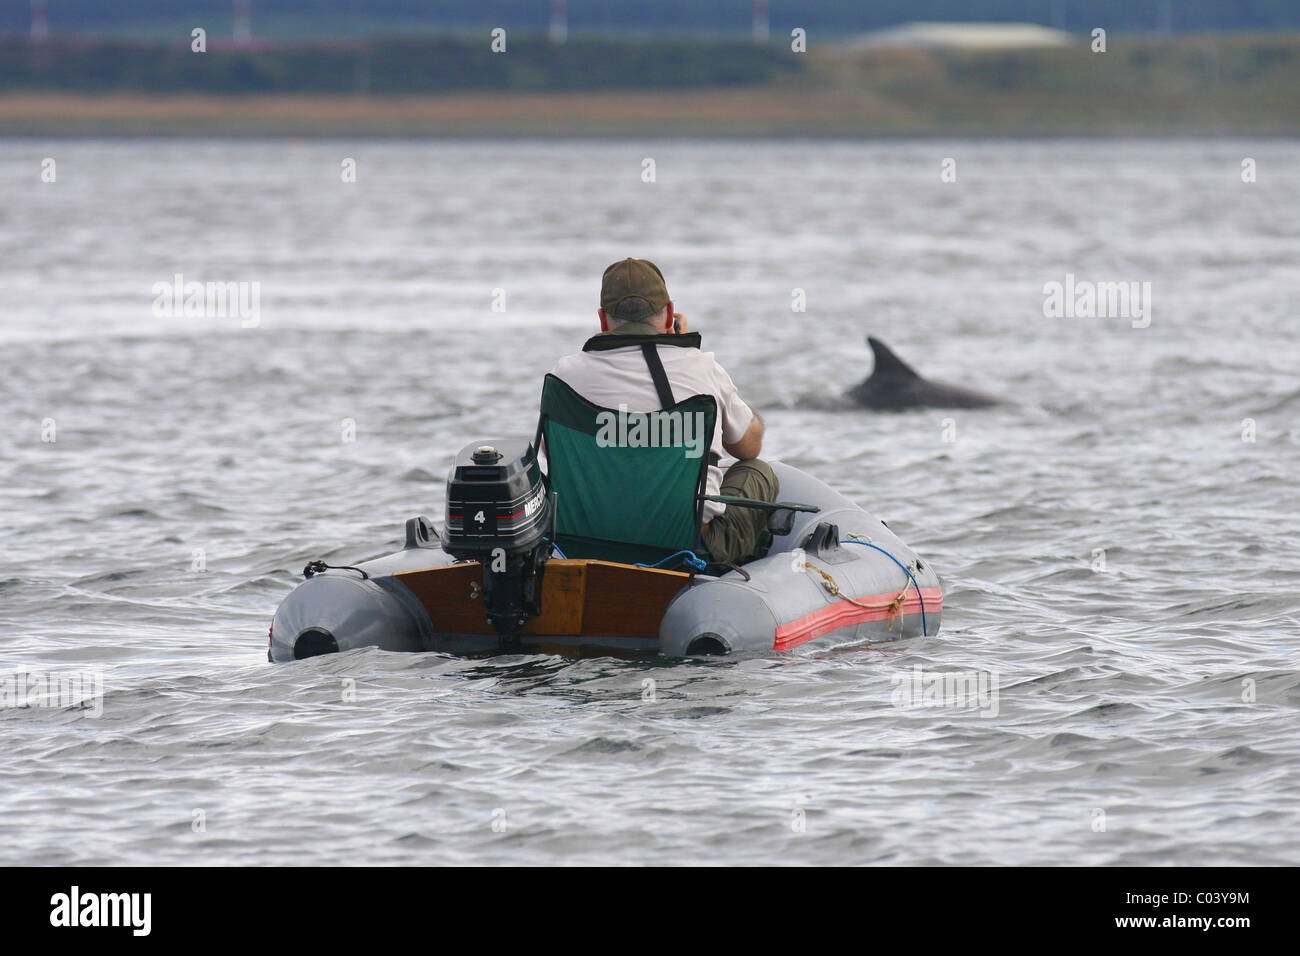 Man in an inflatable dinghy photographing Bottlenose dolphins (Tursiops truncatus), Moray Firth, Scotland, UK - Stock Image